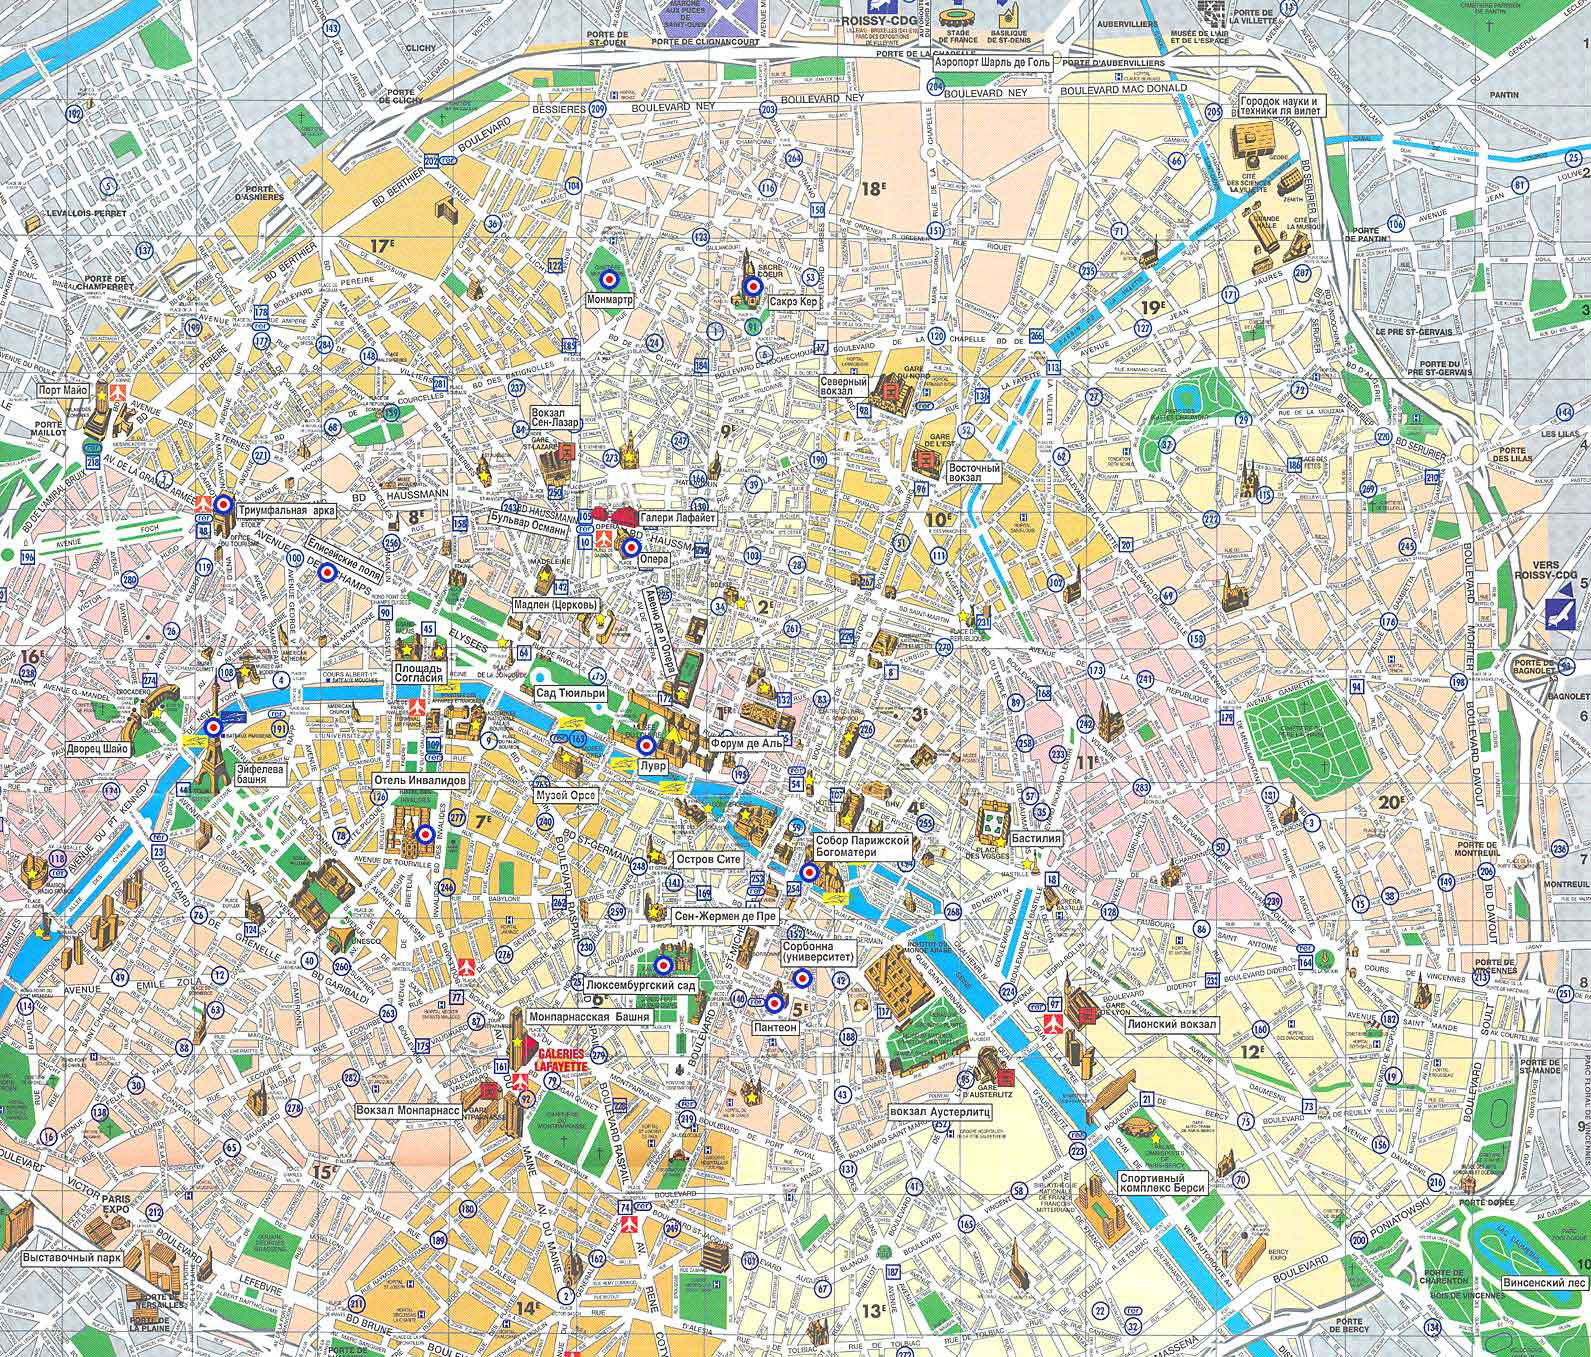 Here is a map of the paris metro subway system